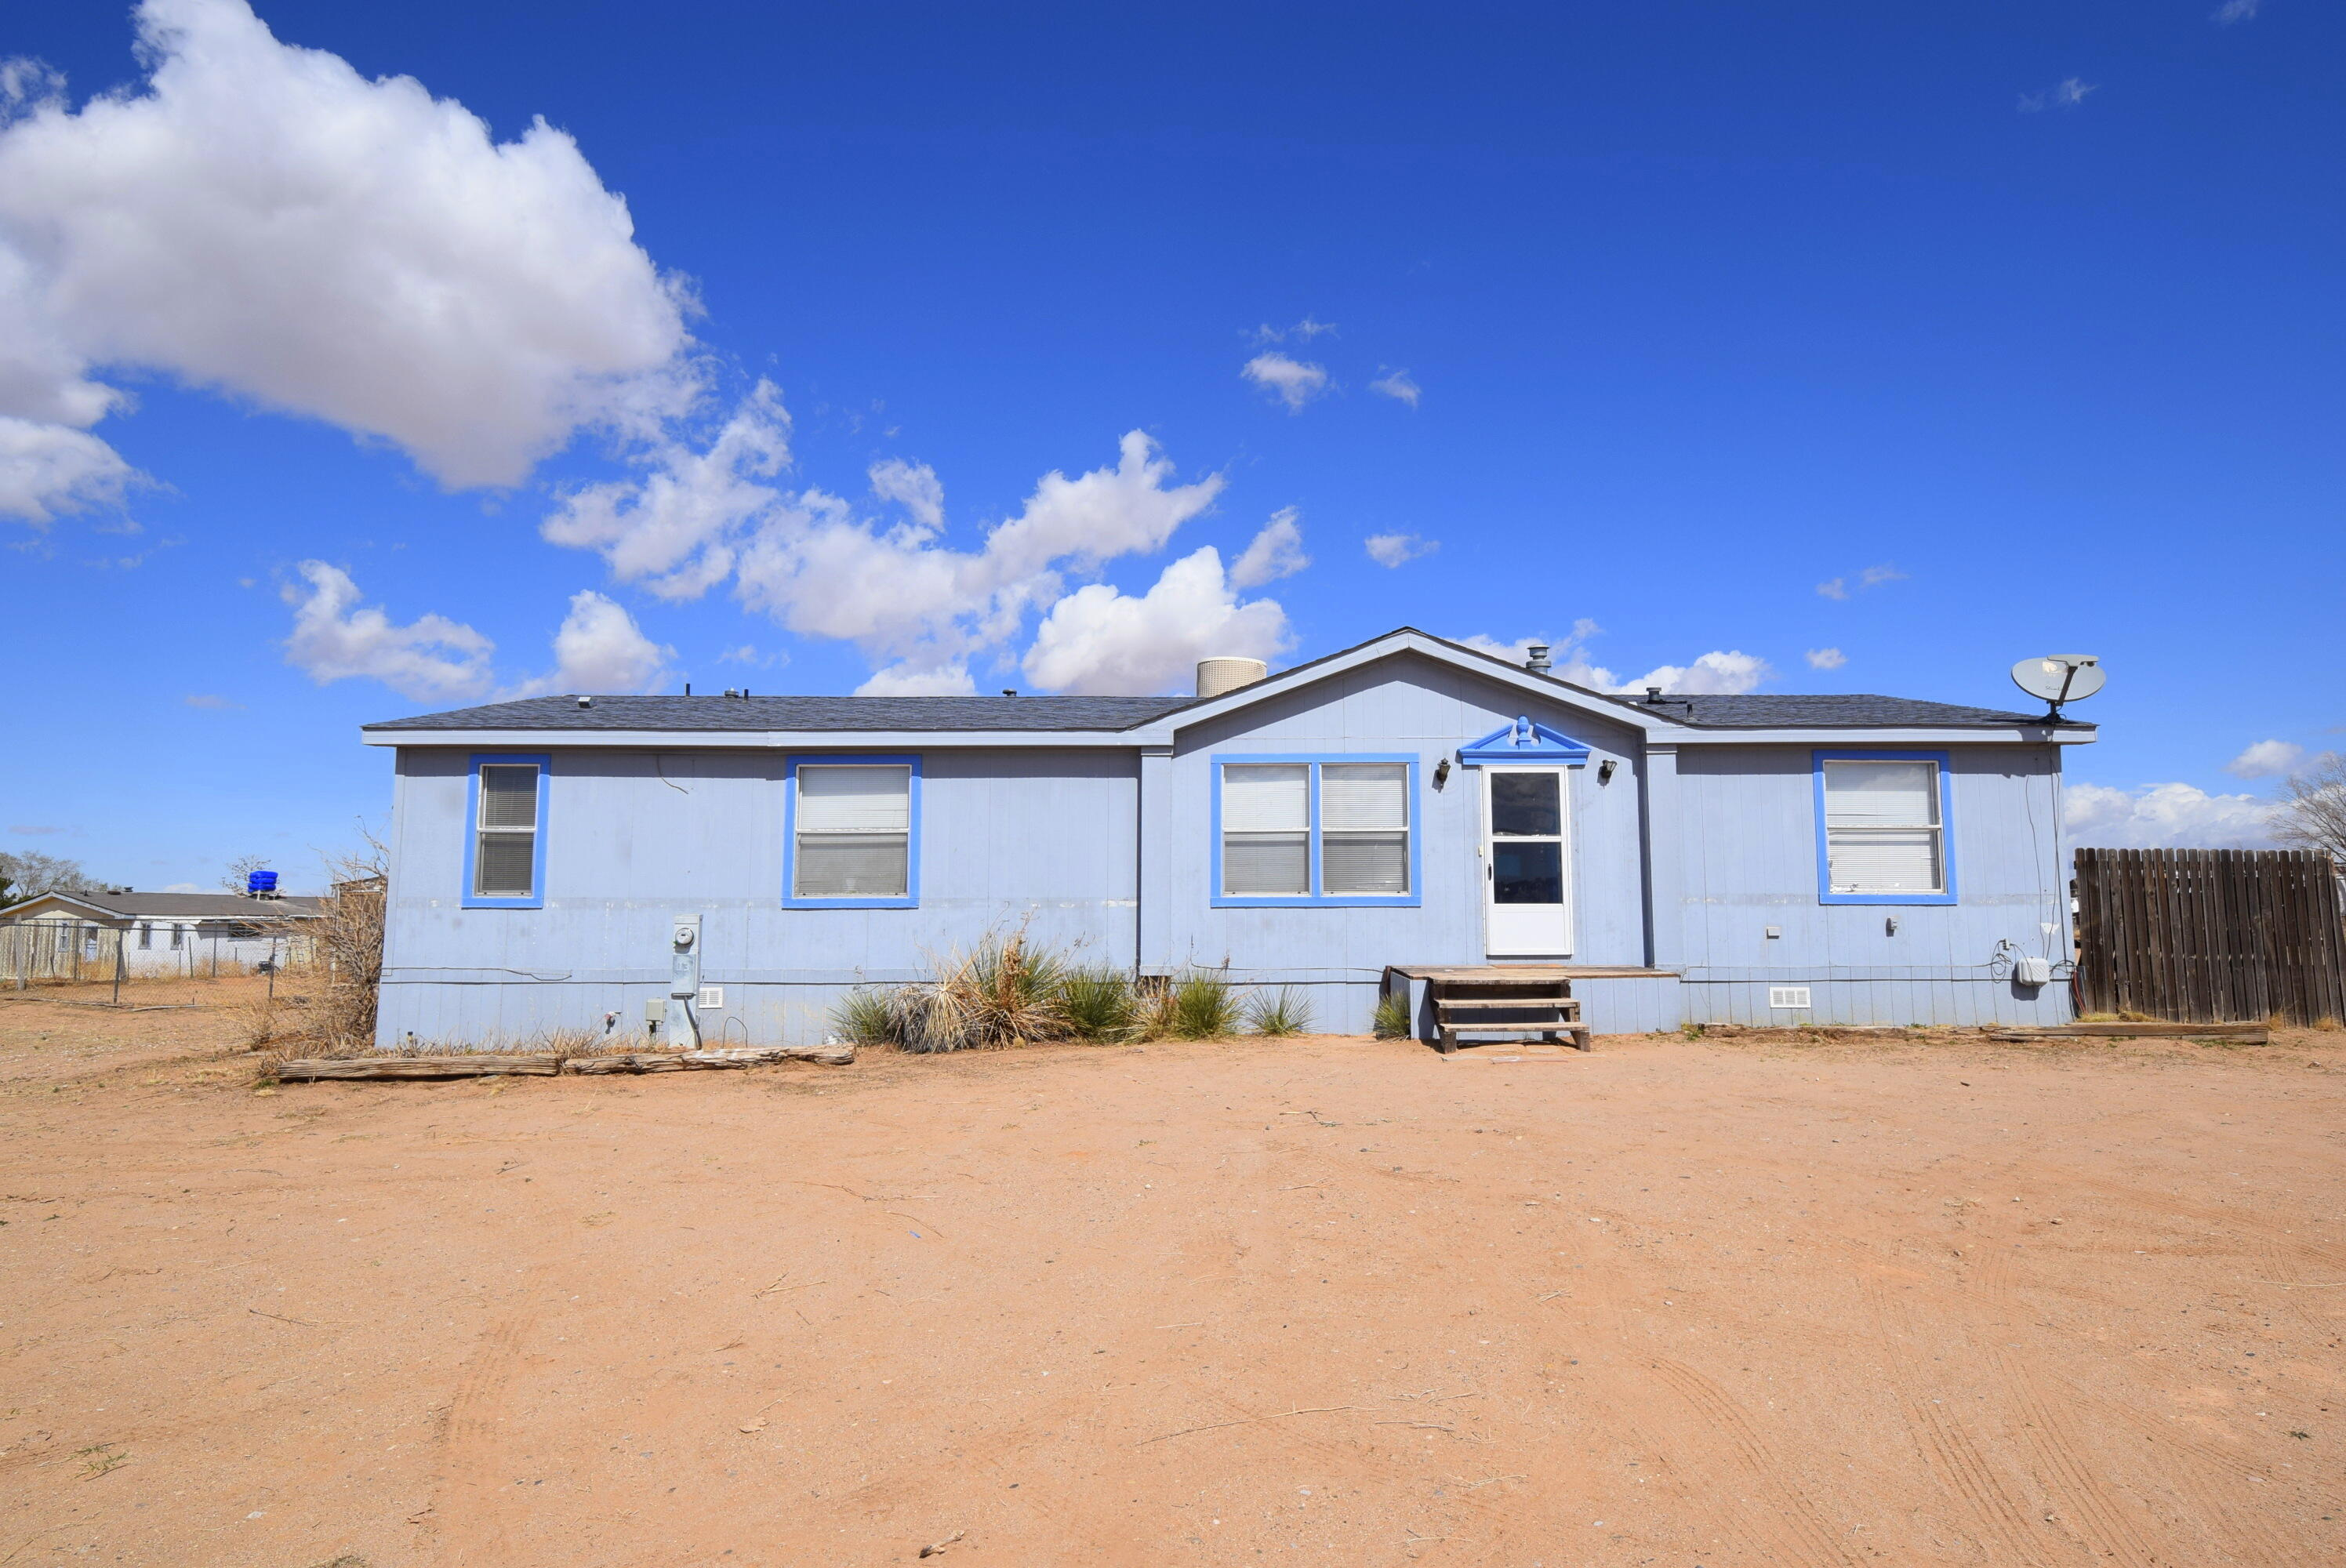 Perfect opportunity to live the country life. Lots of potential in this 3 bedroom/2 bath home in Meadowlake. Lots of room in the fully fenced, huge yard. House is being sold as-is.